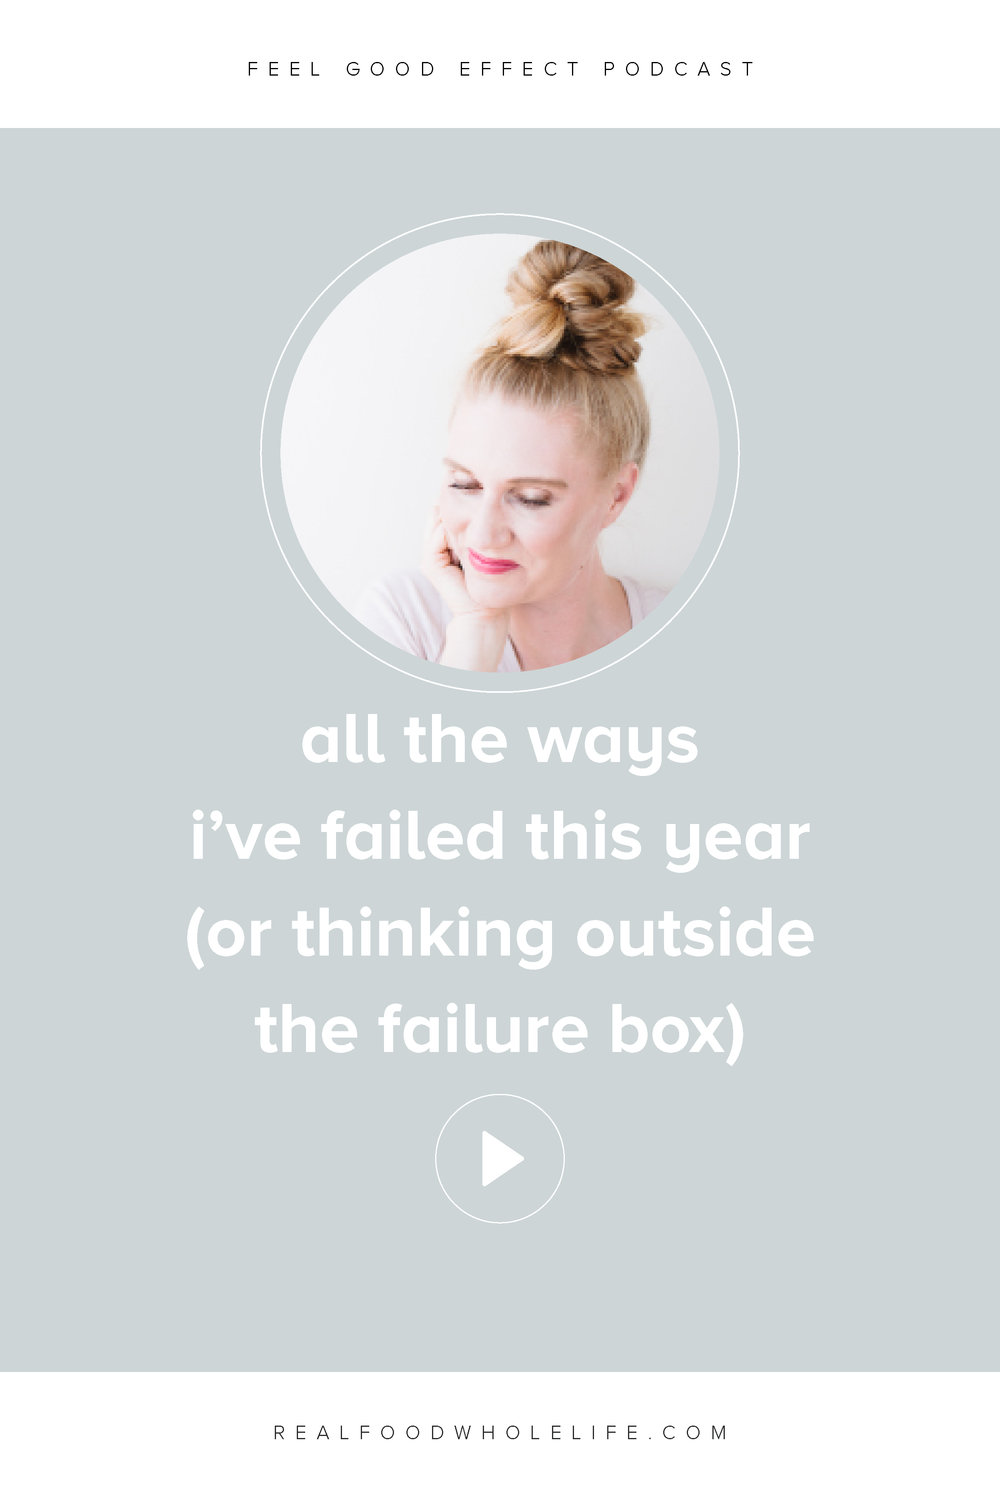 30 All the Ways I've Failed this Year (or Thinking Outside the Failure Box): Feel Good Effect Podcast